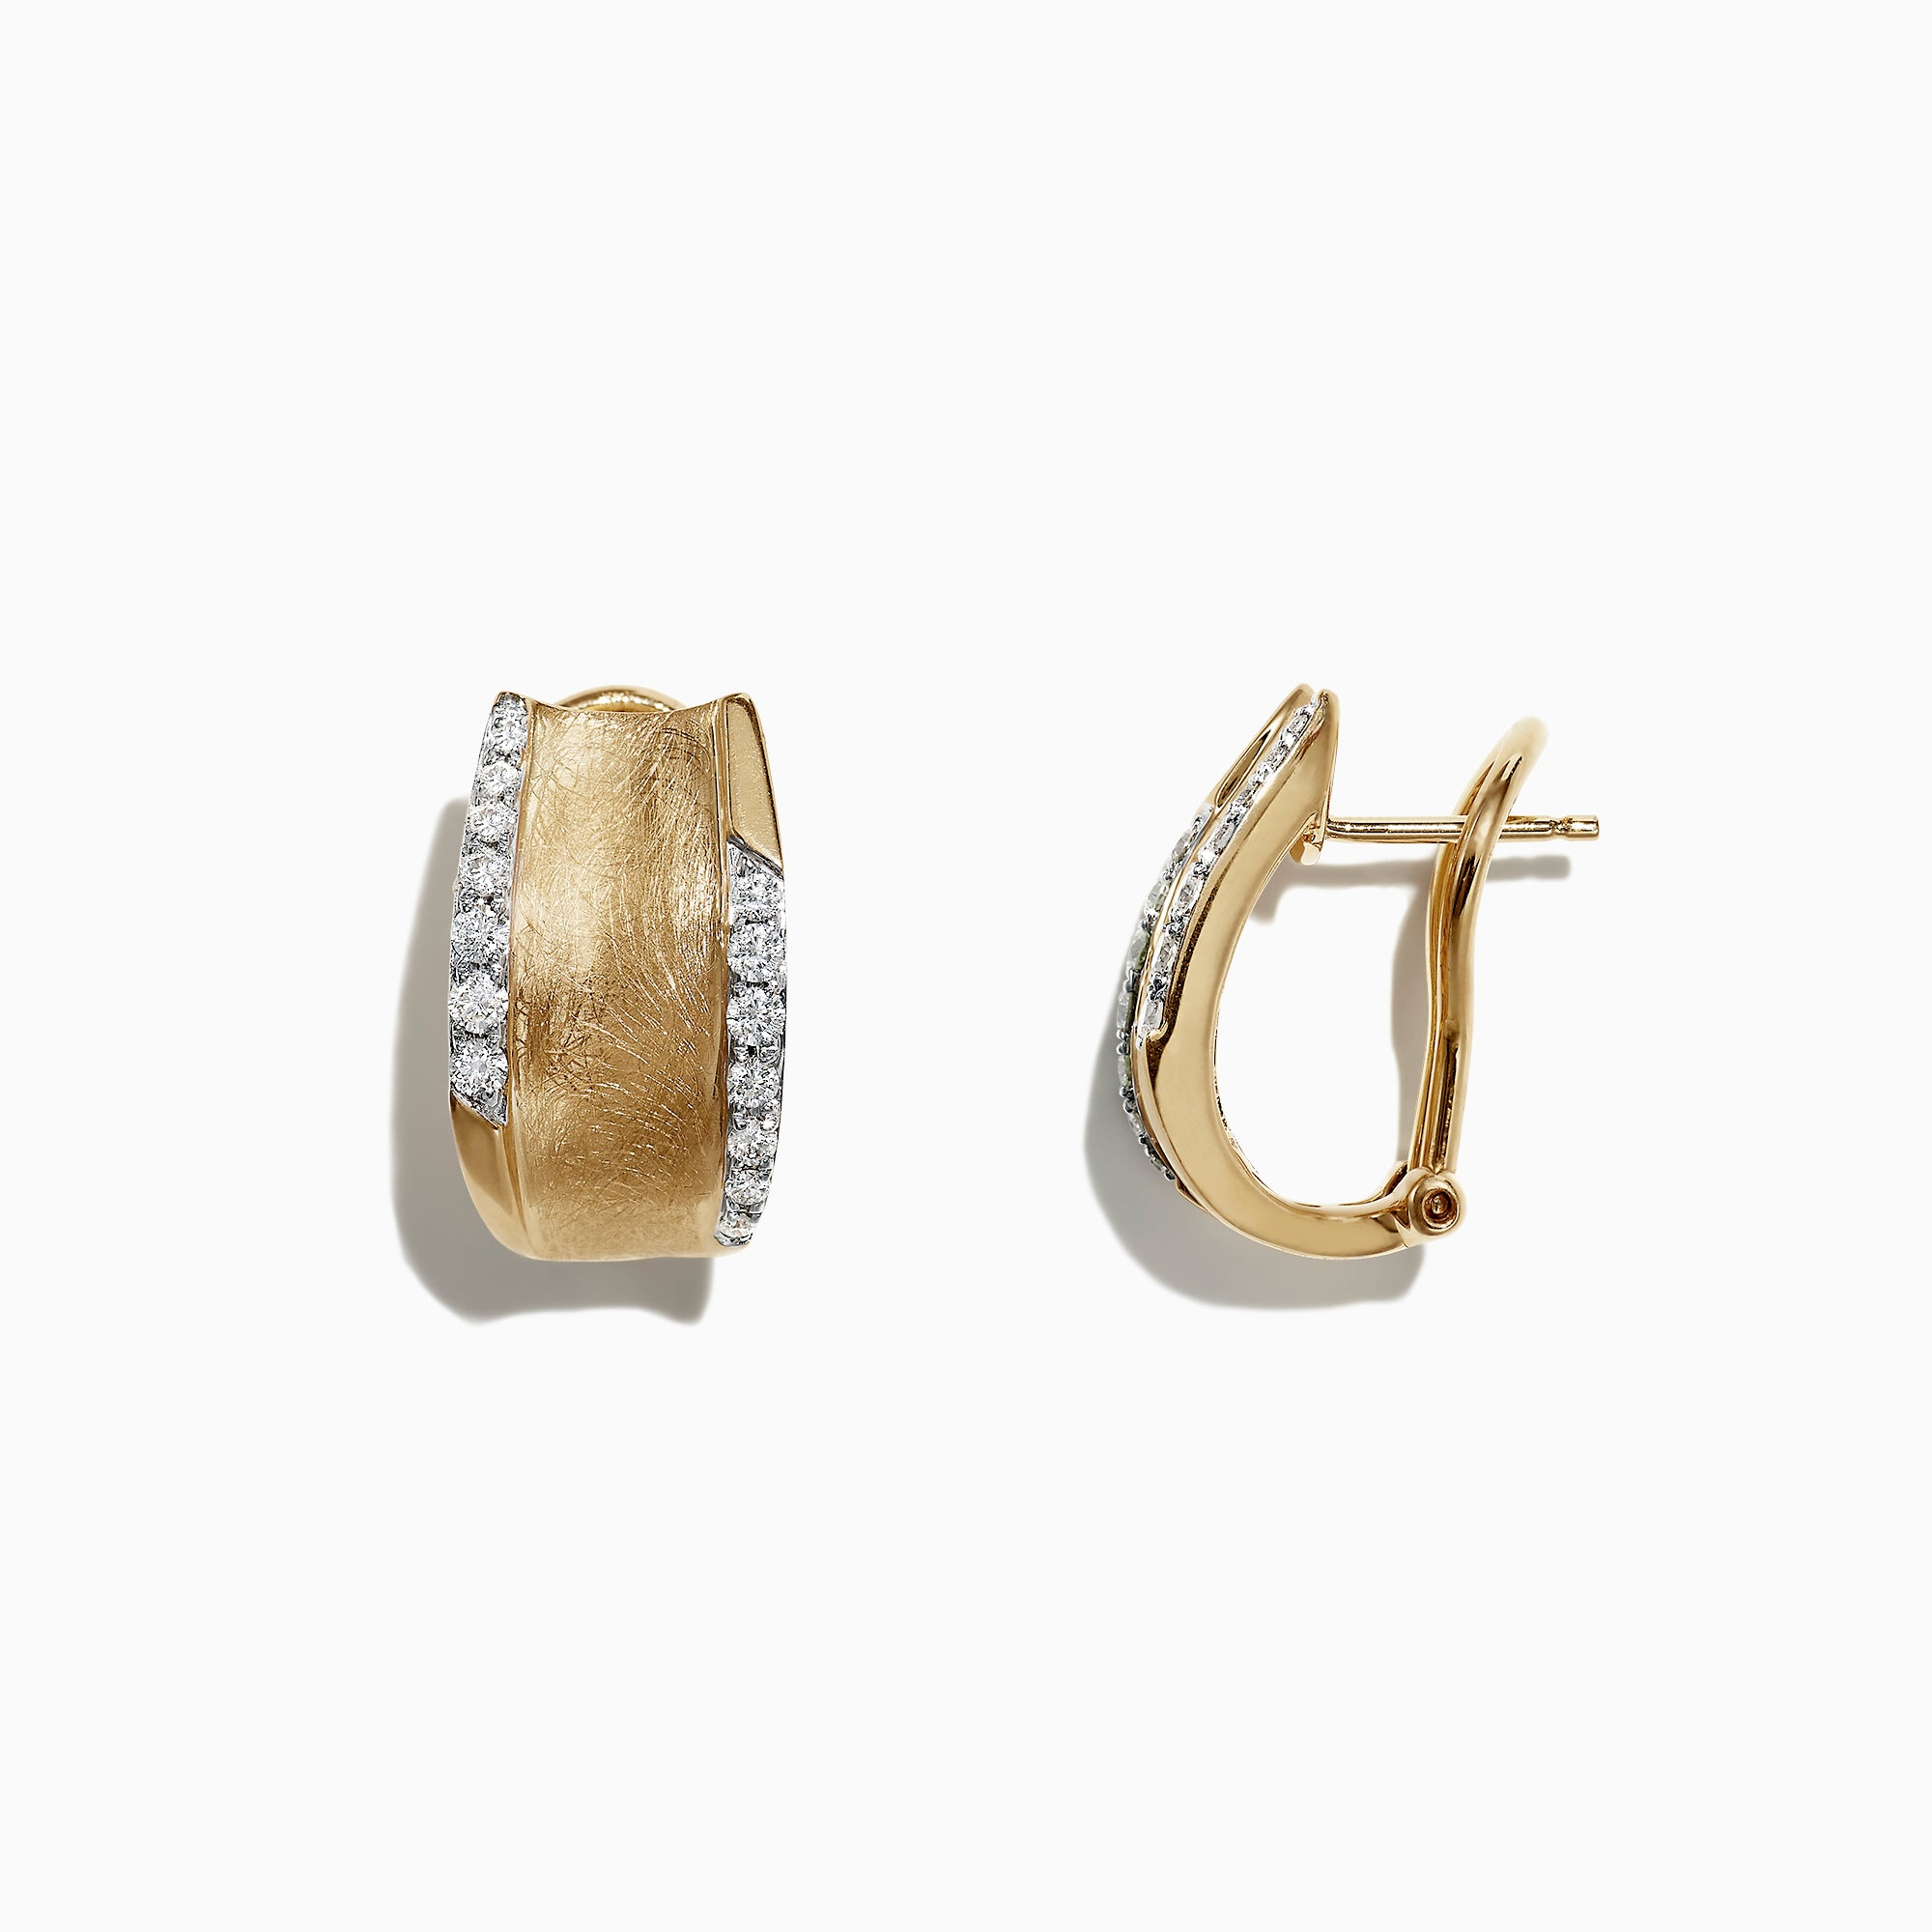 Effy D'Oro 14K Yellow Gold Diamond Hoop Earrings, 0.39 TCW